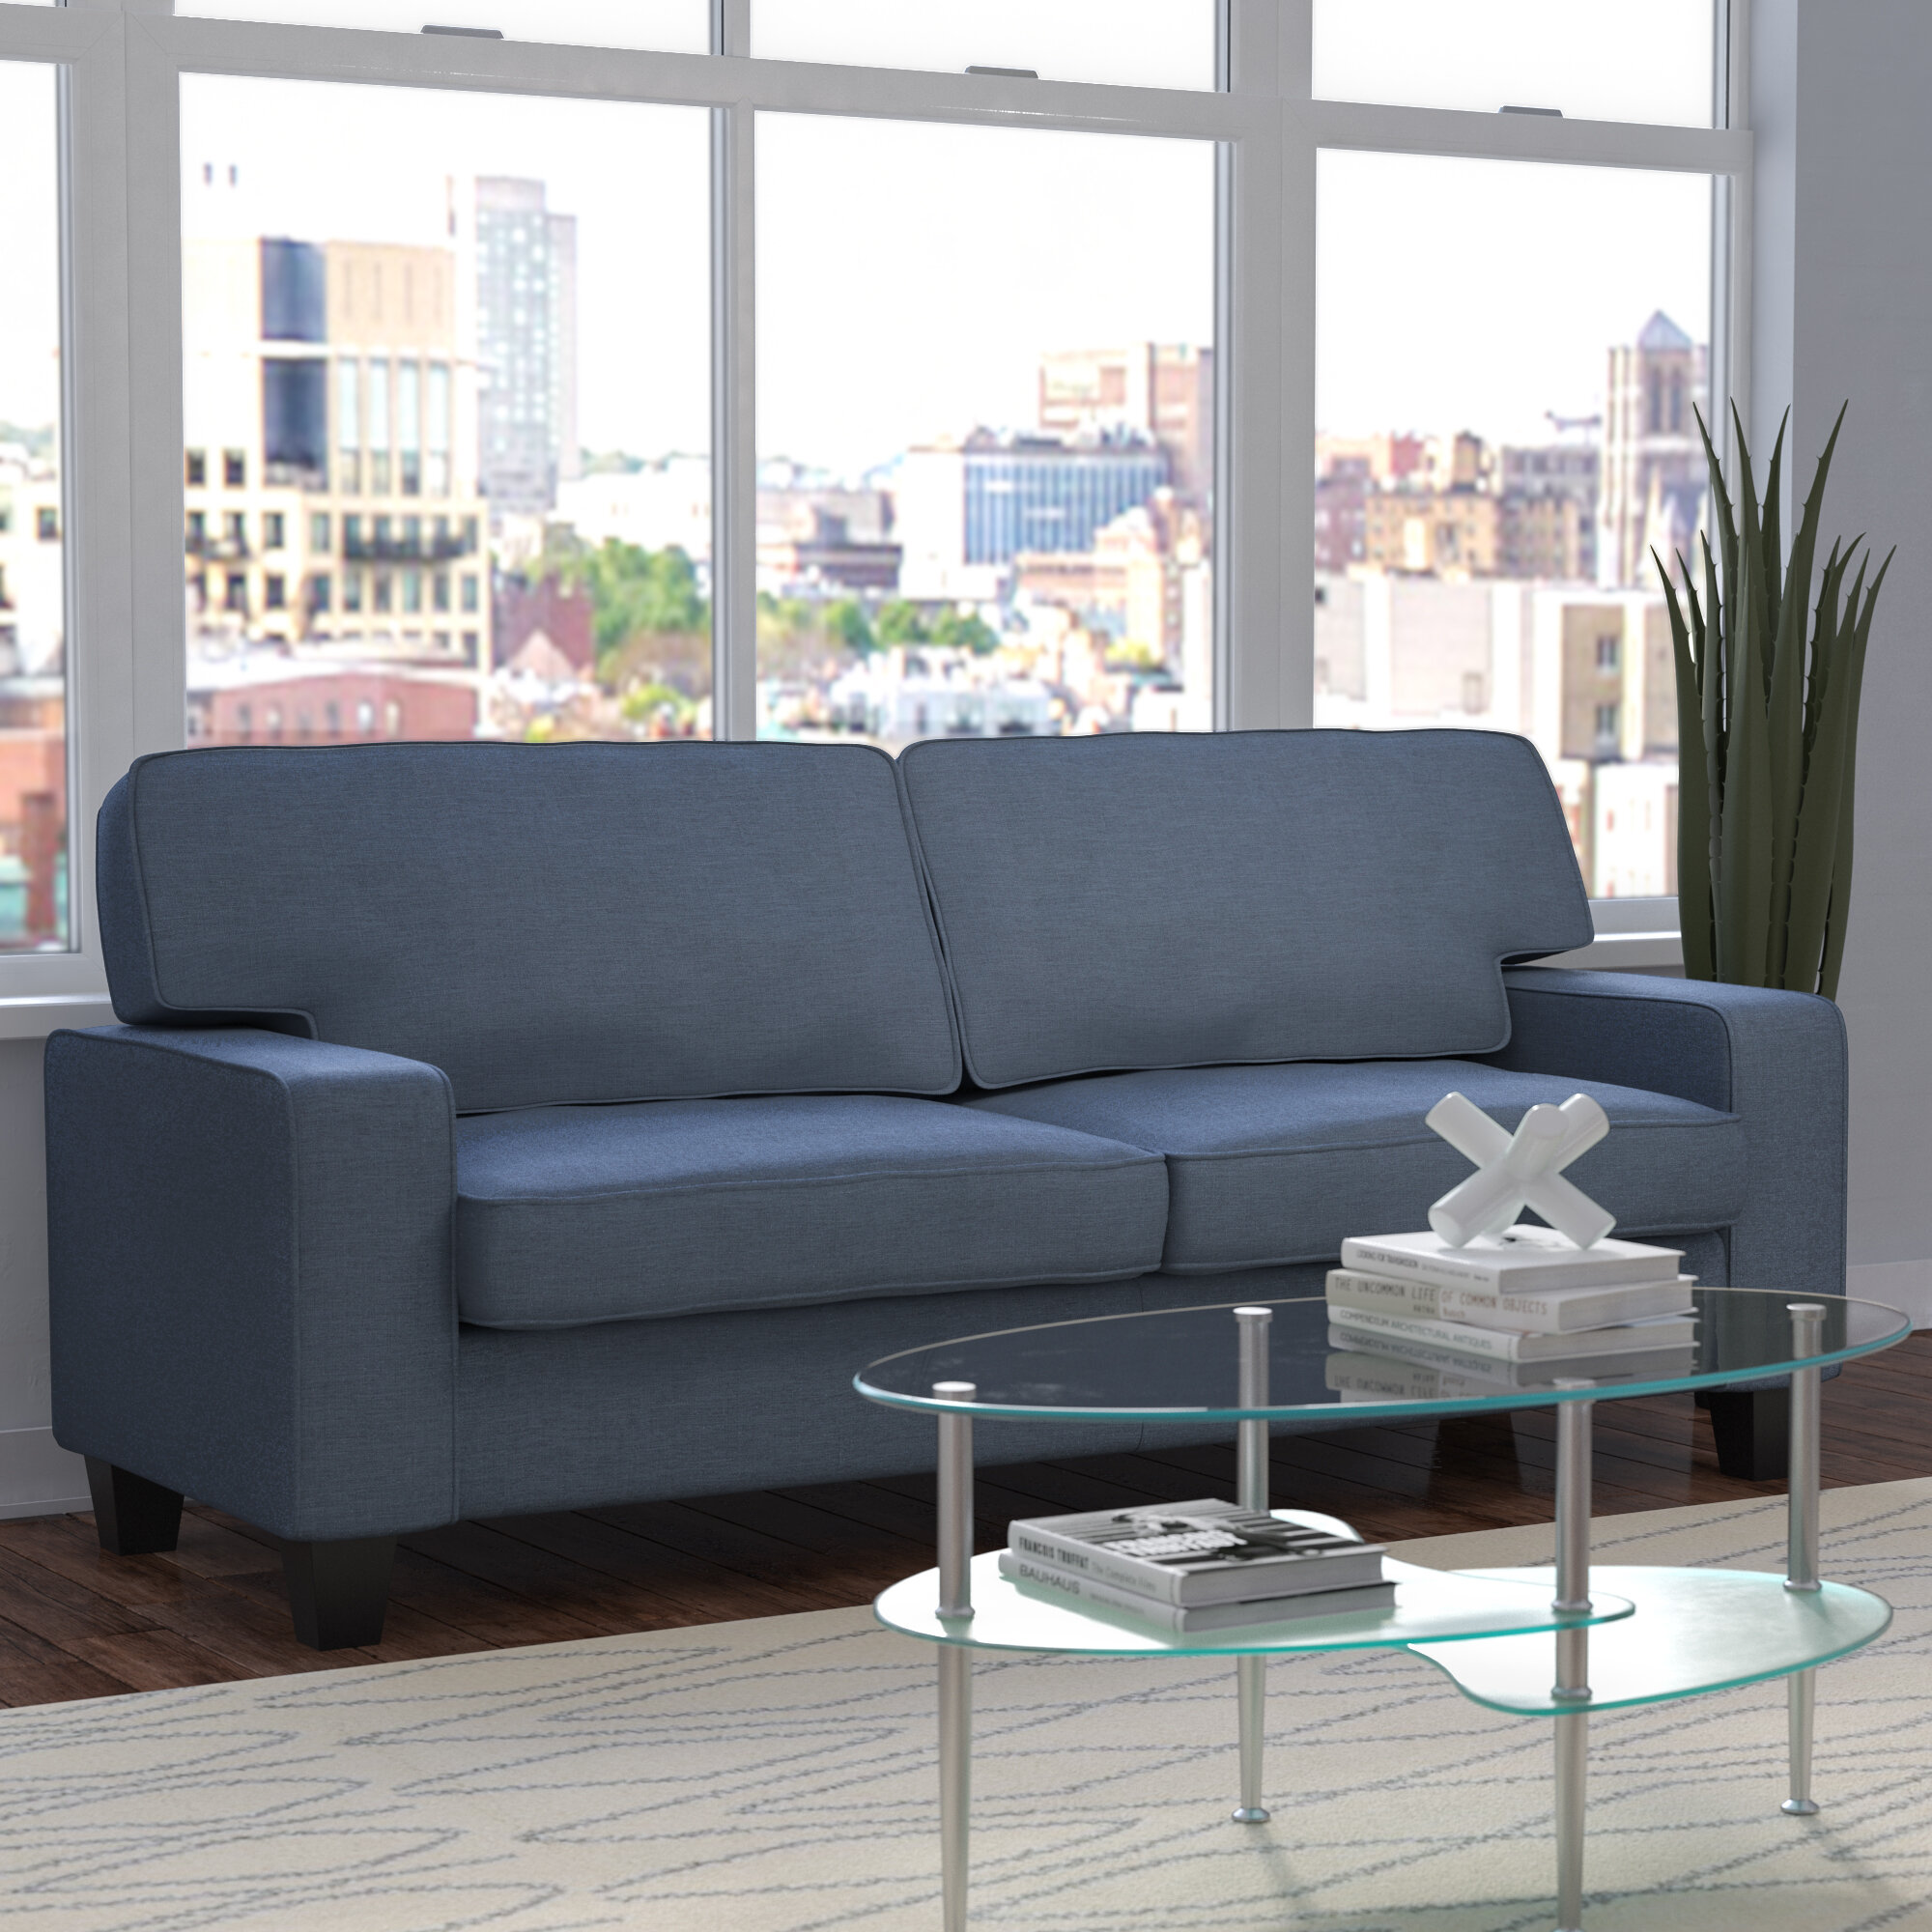 Modern Living Room Couches New in House Designerraleigh kitchen